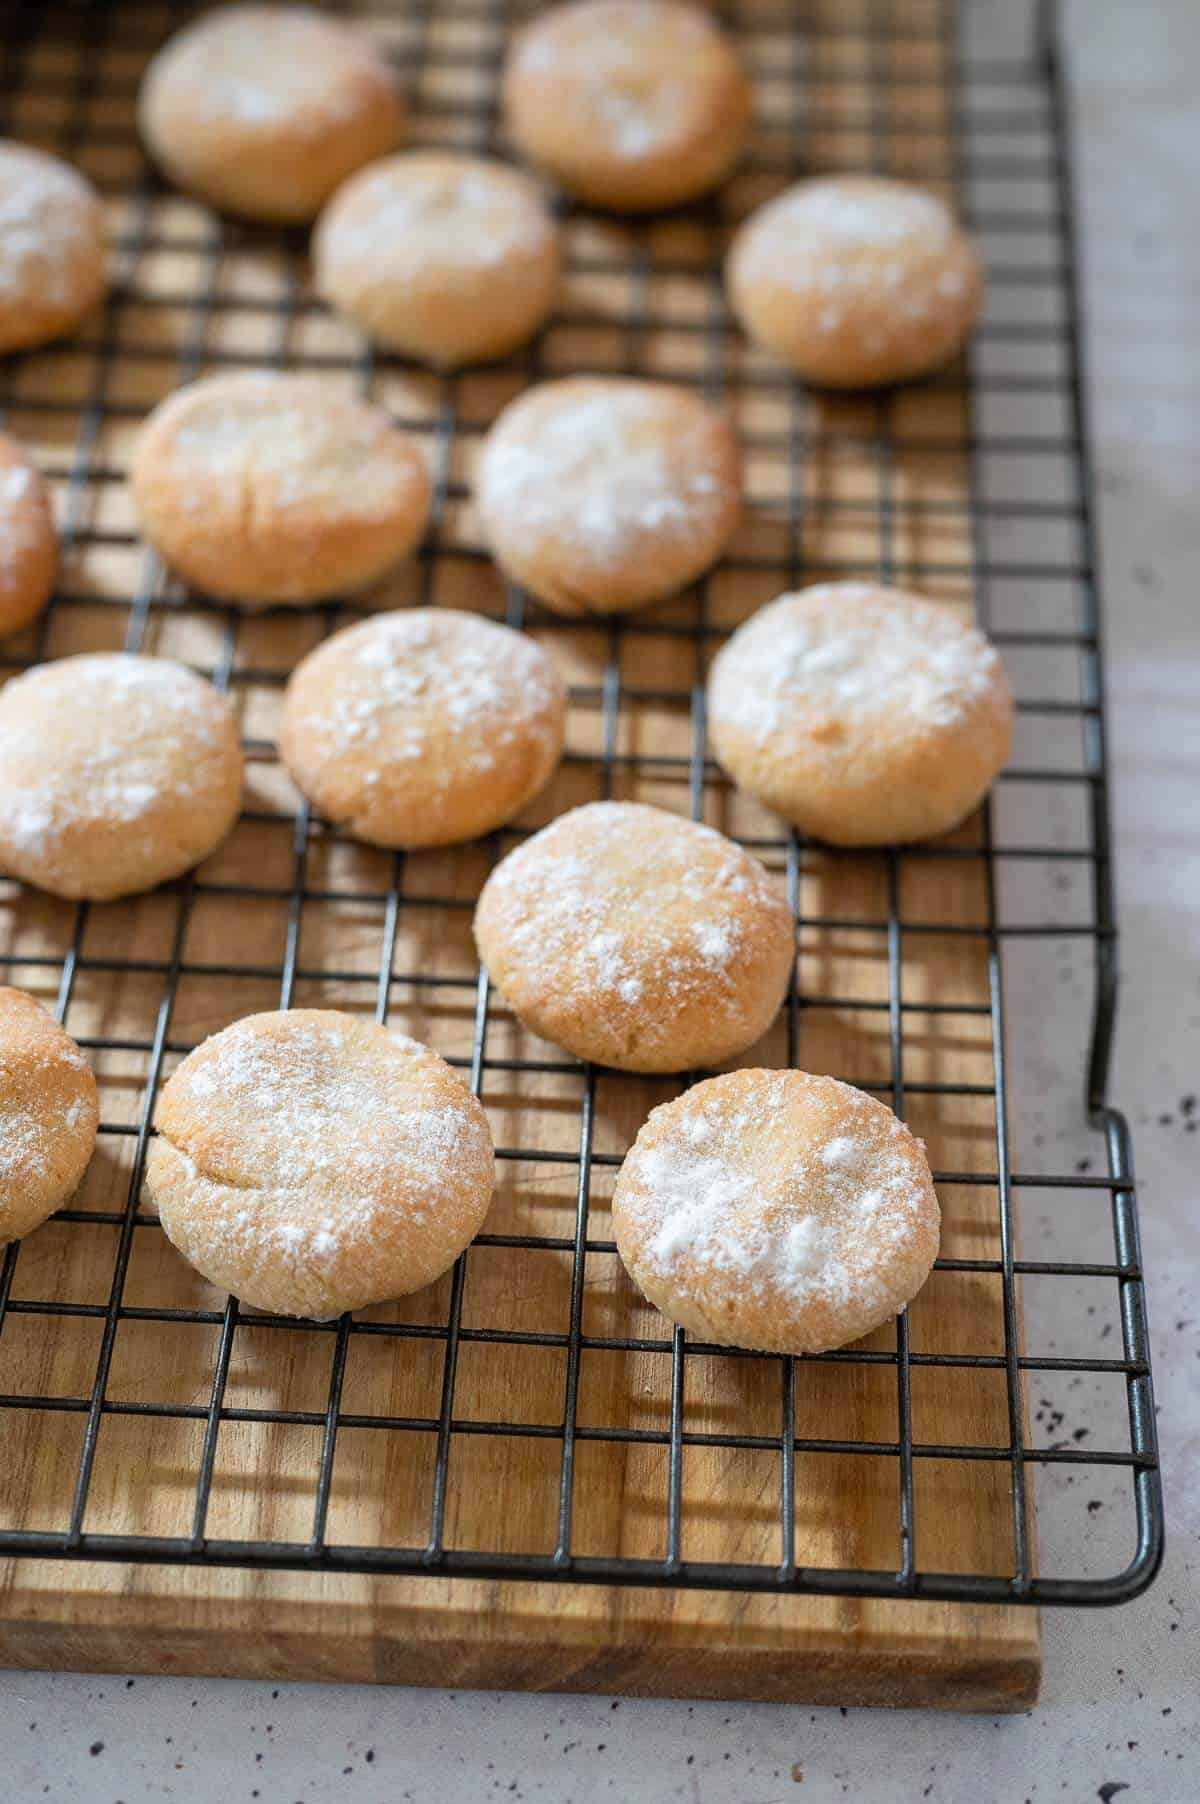 cooked amaretti biscuits scattered on a wire rack